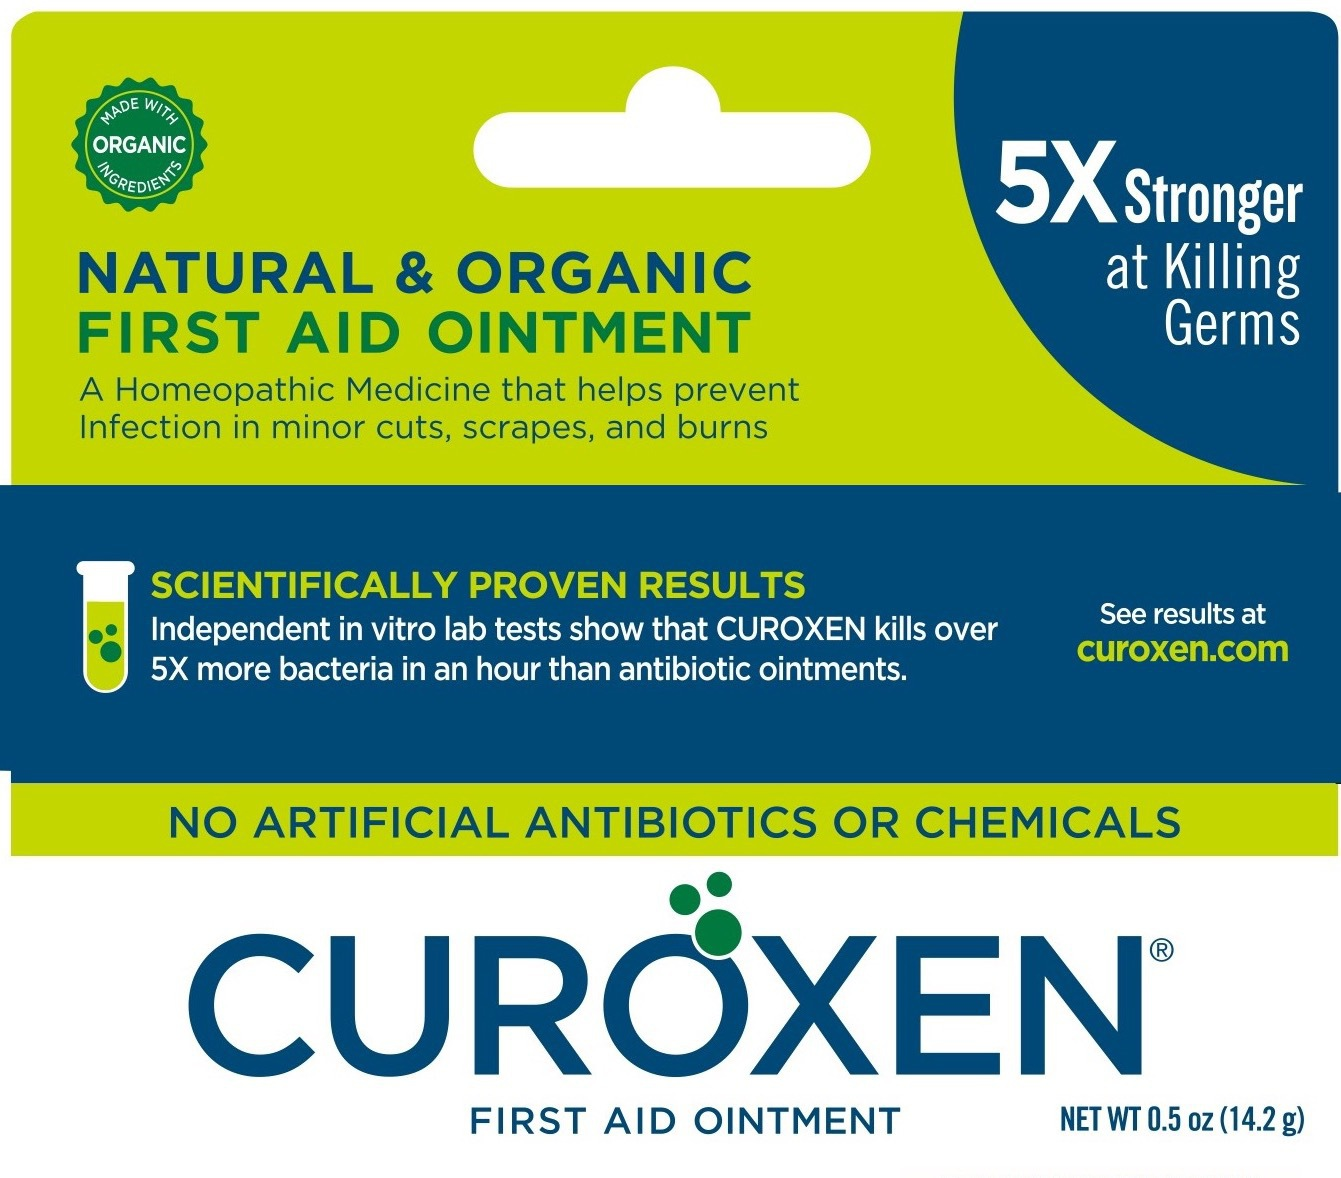 Natural & Organic First Aid Ointment | The Natural Products